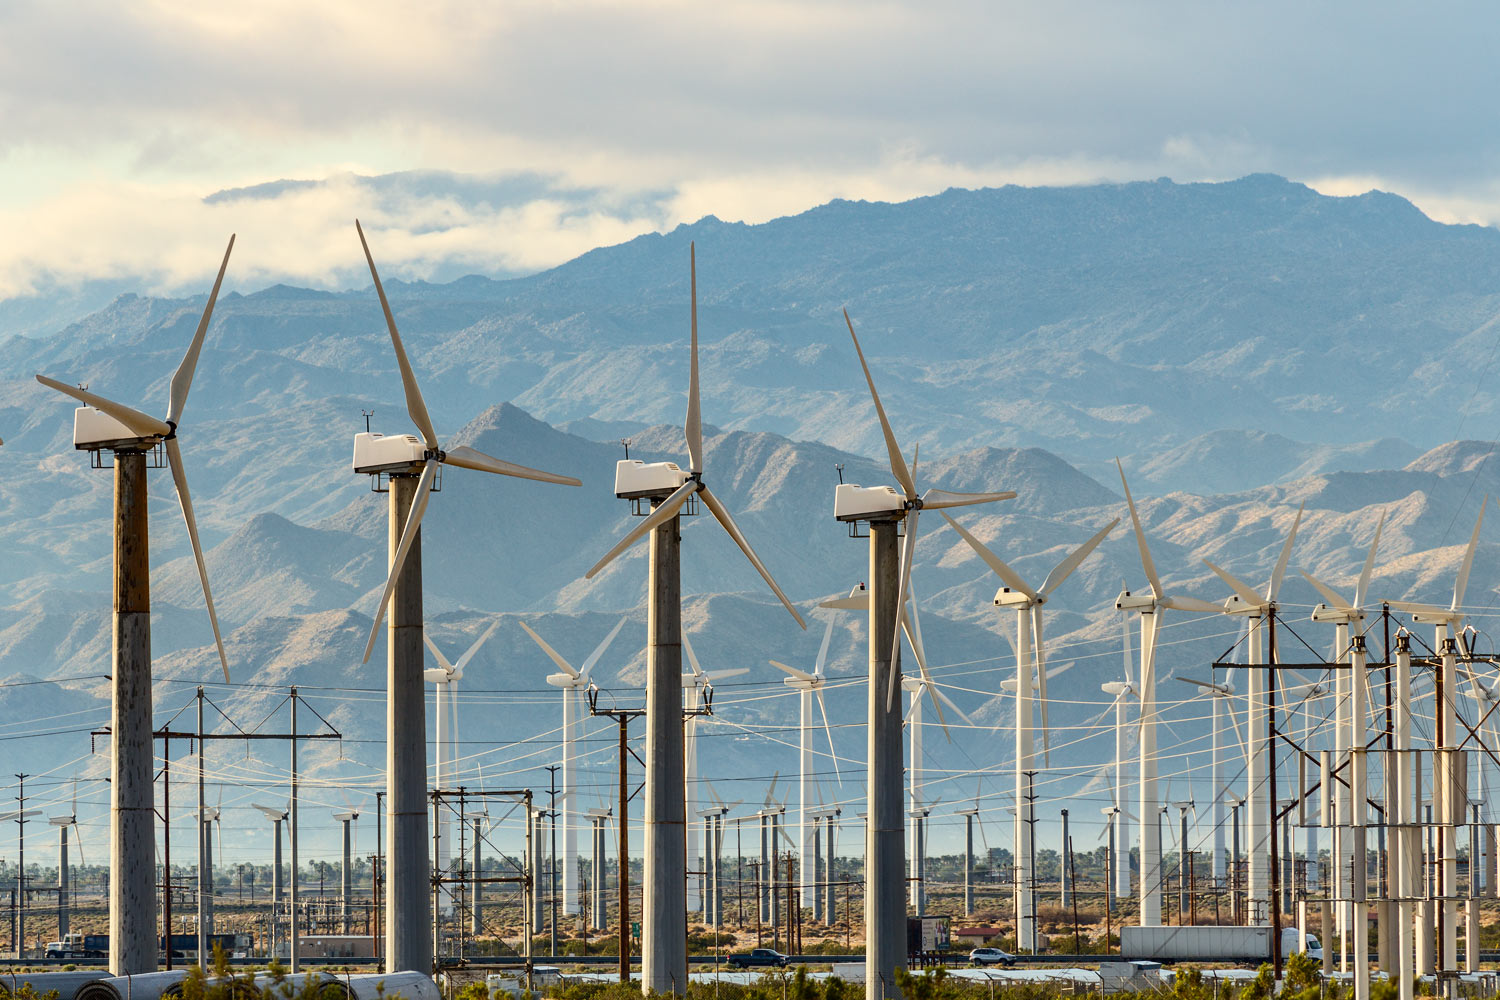 San Gorgonio Pass Wind Farm. Palm Springs, CA. Study #6